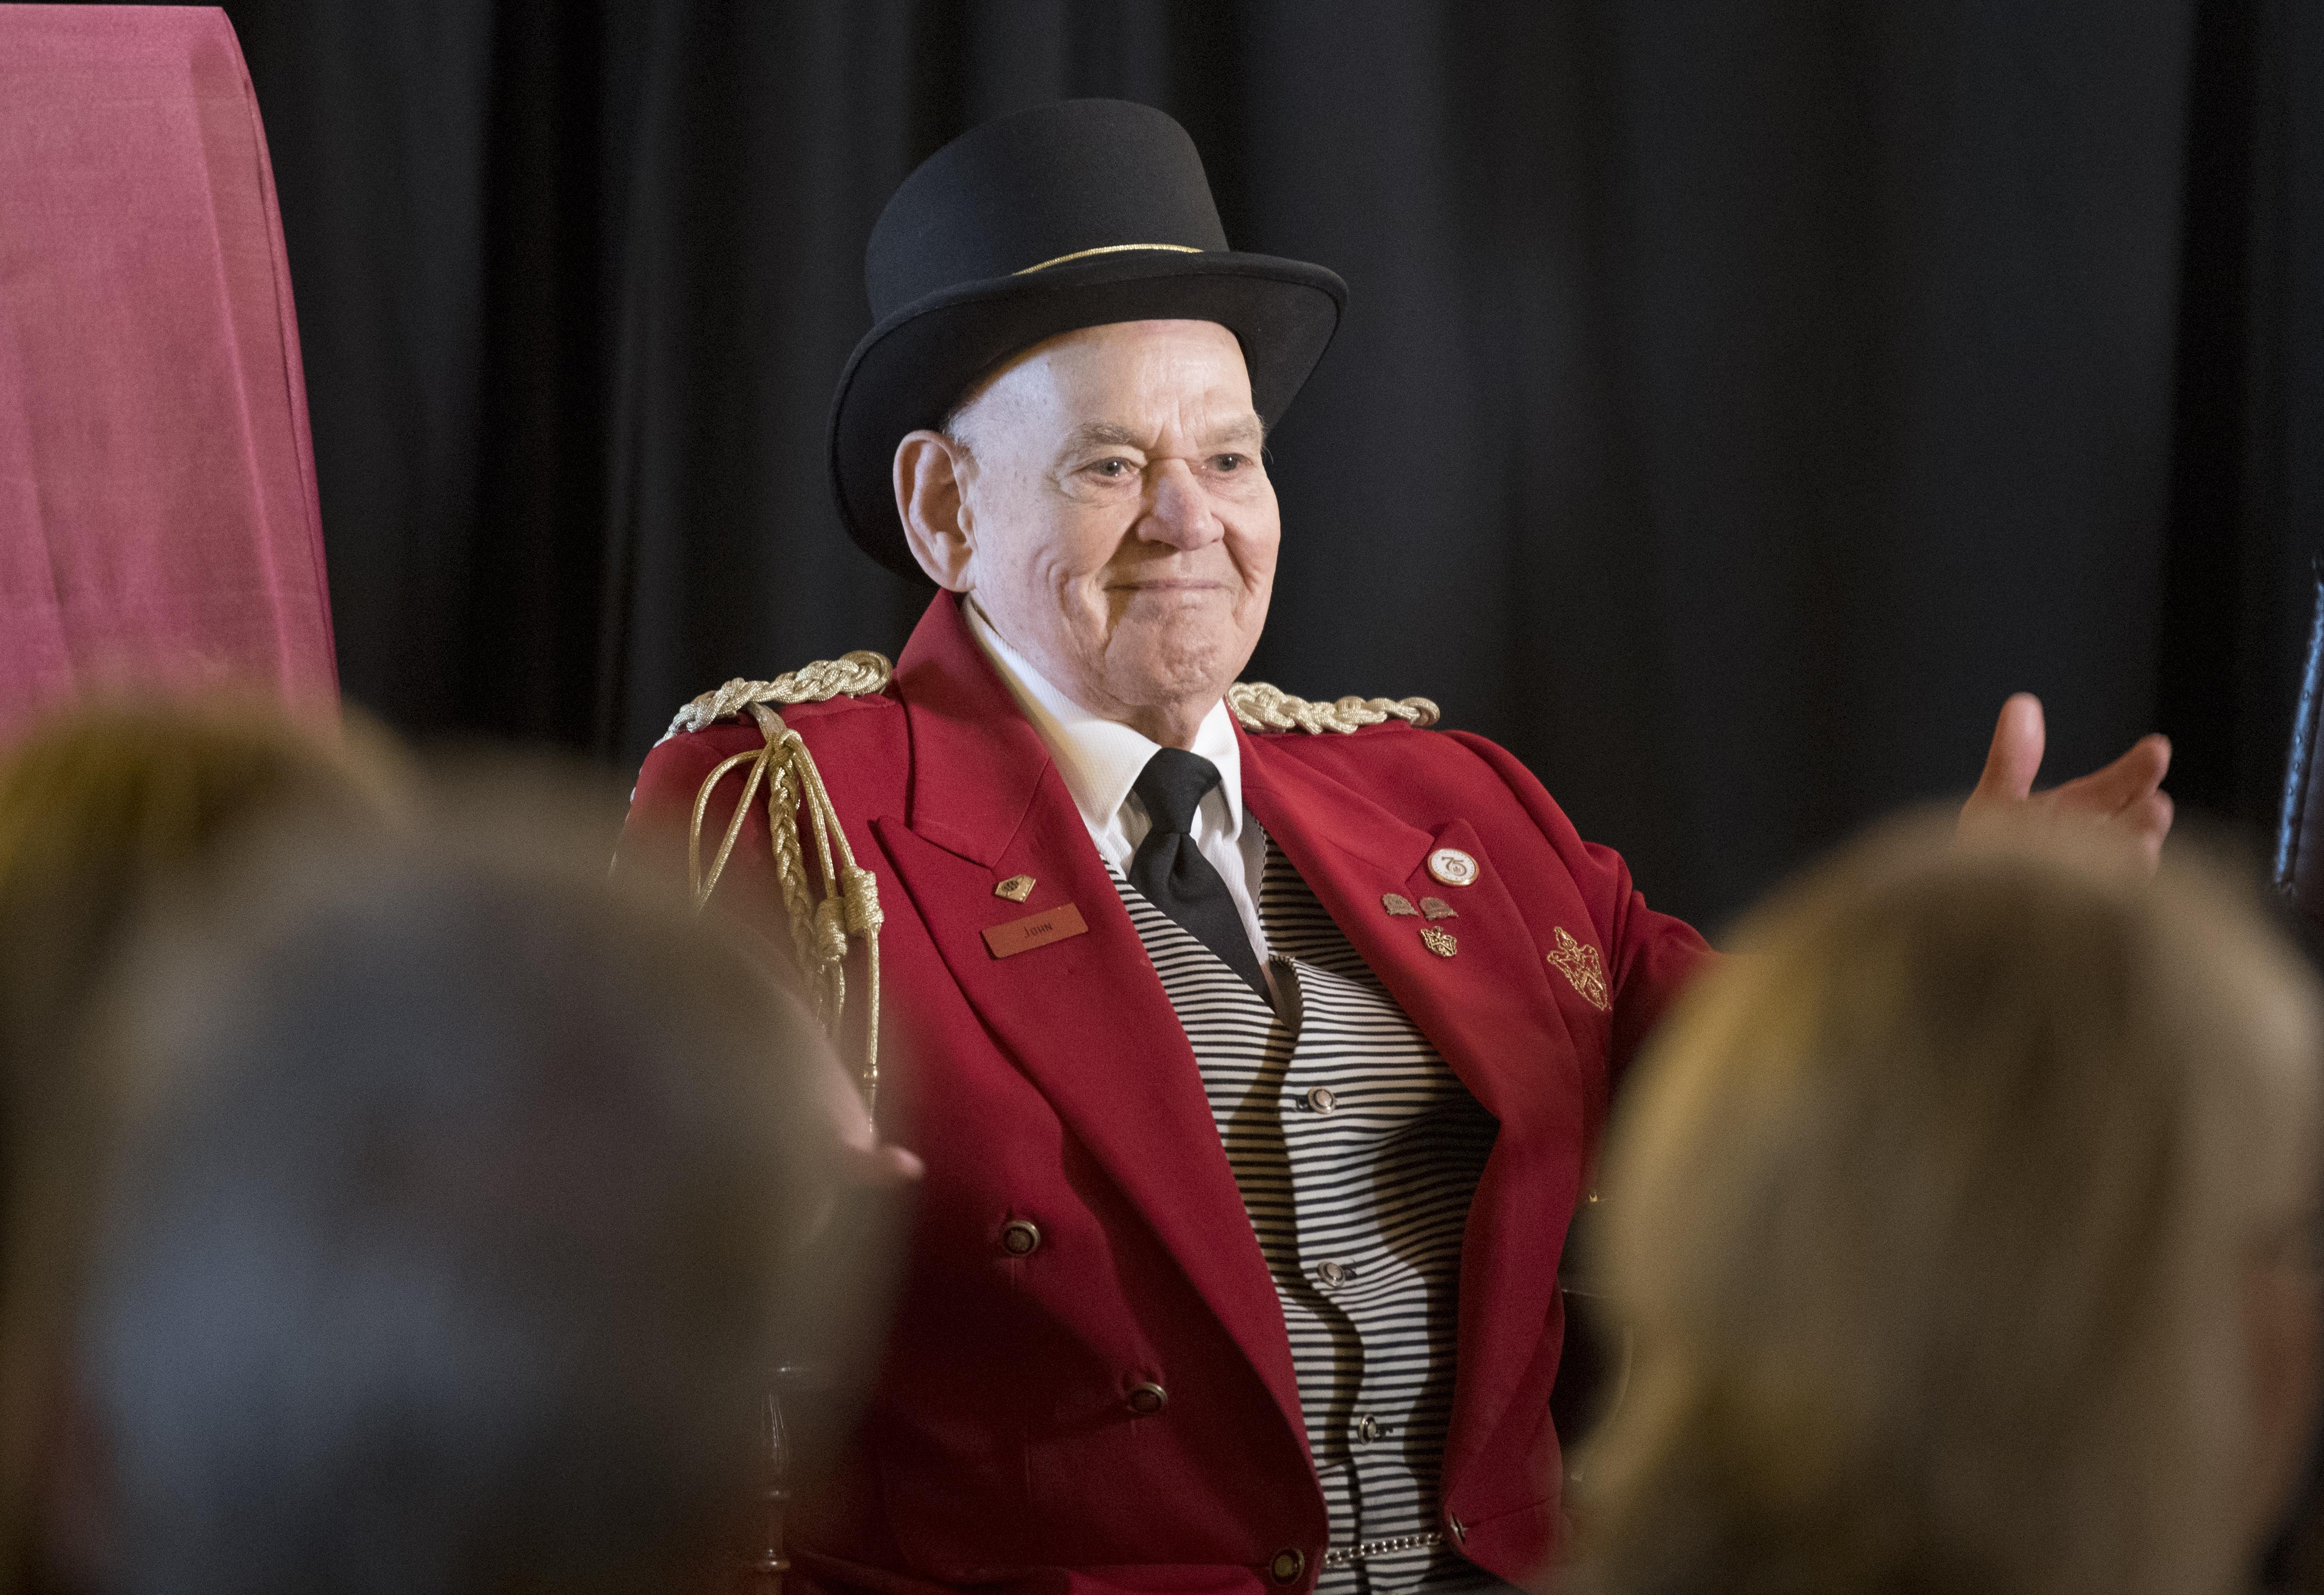 FILE - John Reed the Davenport Hotel door man who was hired by Louis Davenport  sc 1 st  The Spokesman-Review & Davenport Hotel doorman John Reed dies after 75-year career | The ...